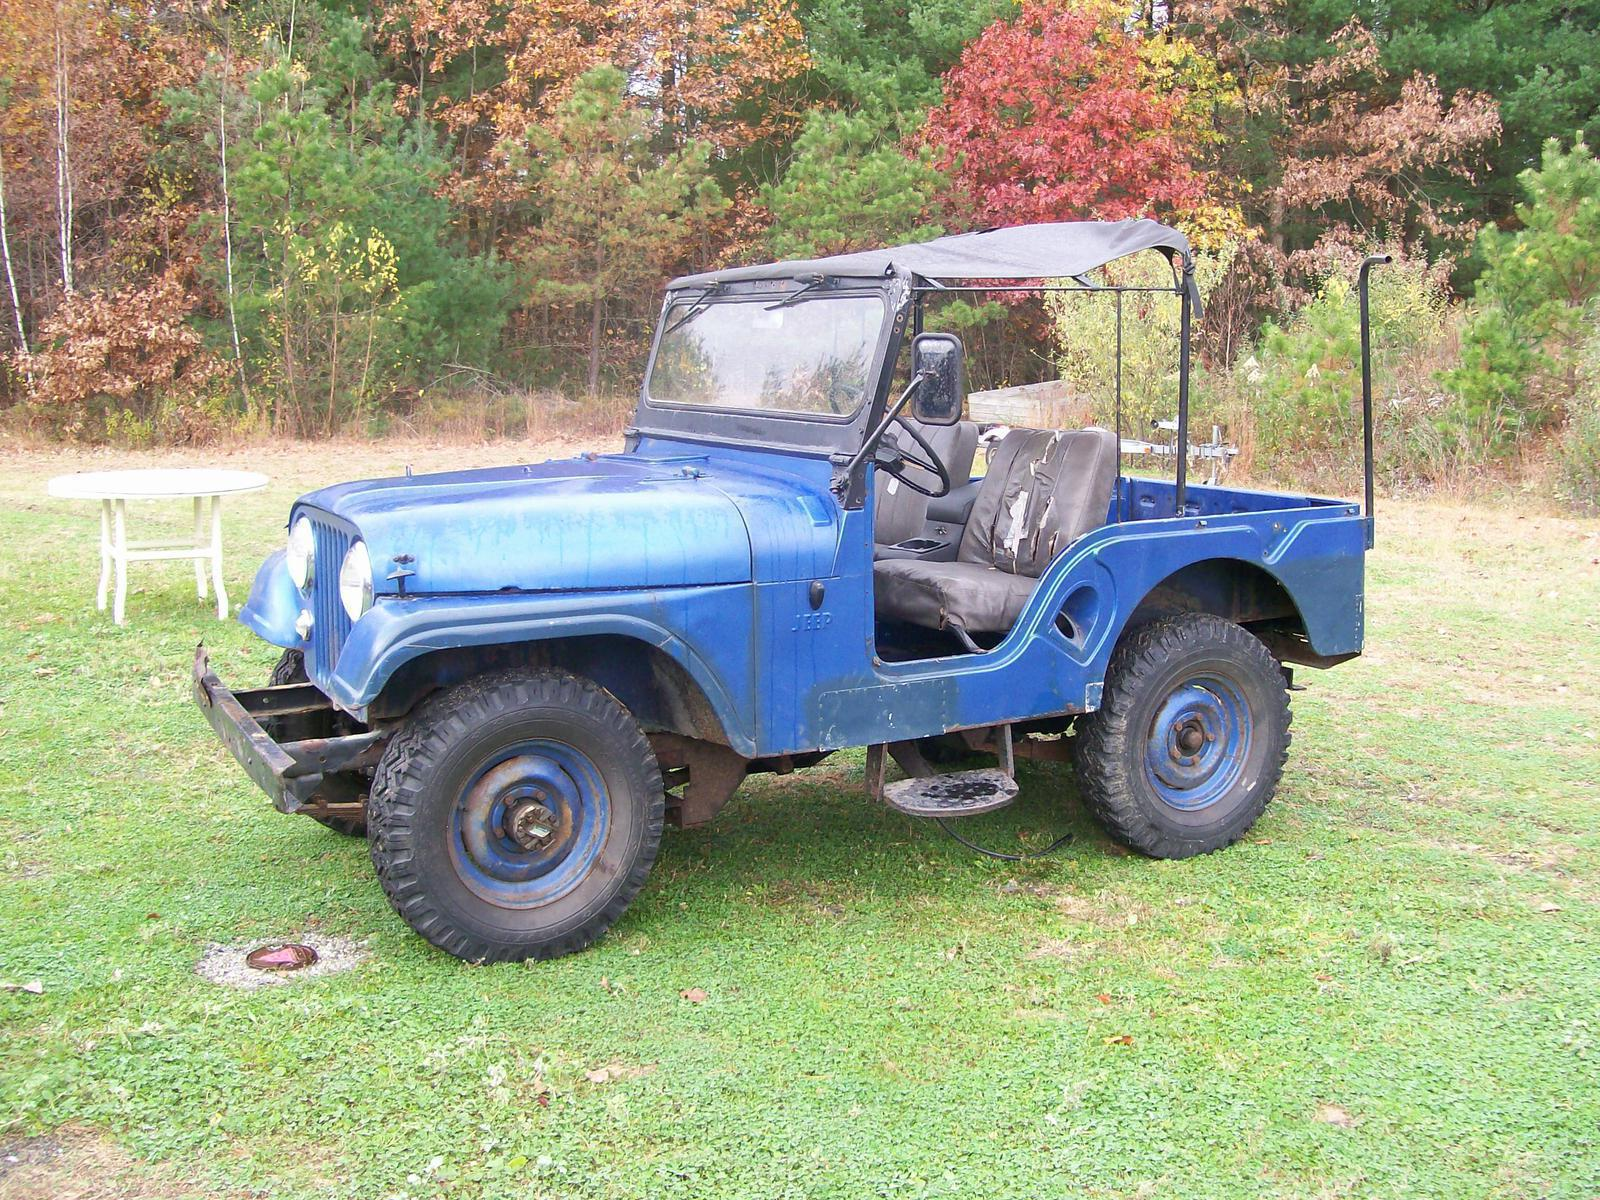 Willys Jeep For Sale >> 1956 Jeep Willys Jeep Cj 5 For Sale In Acton Ma Bikeworx 978